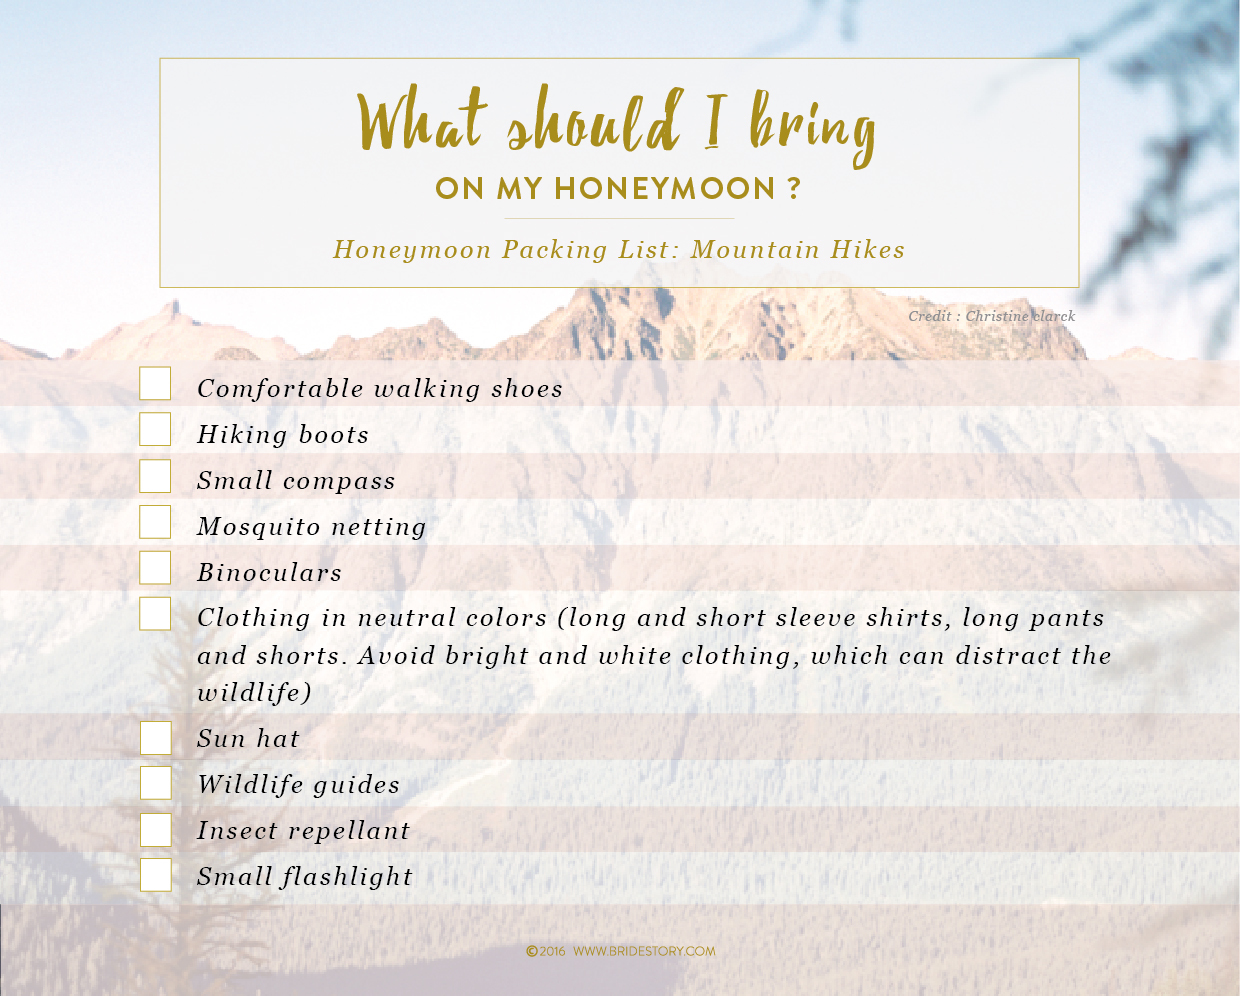 Honeymoon 101: Preparation and Packing Lists  Image 7